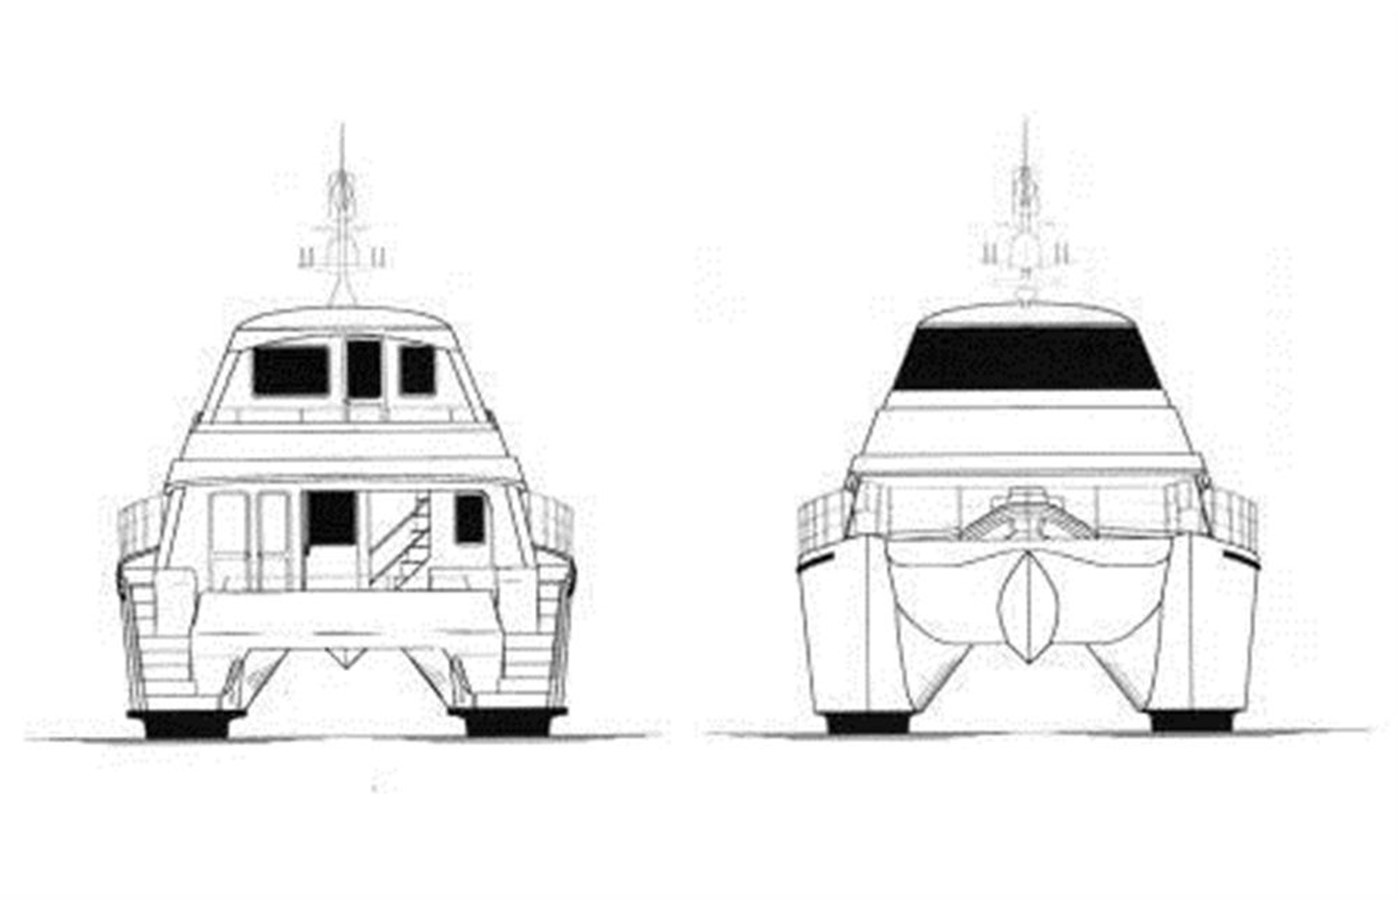 Fore and Aft Deck Drawing 2011 DICKSON 620 Sport Cruiser Catamaran 75591